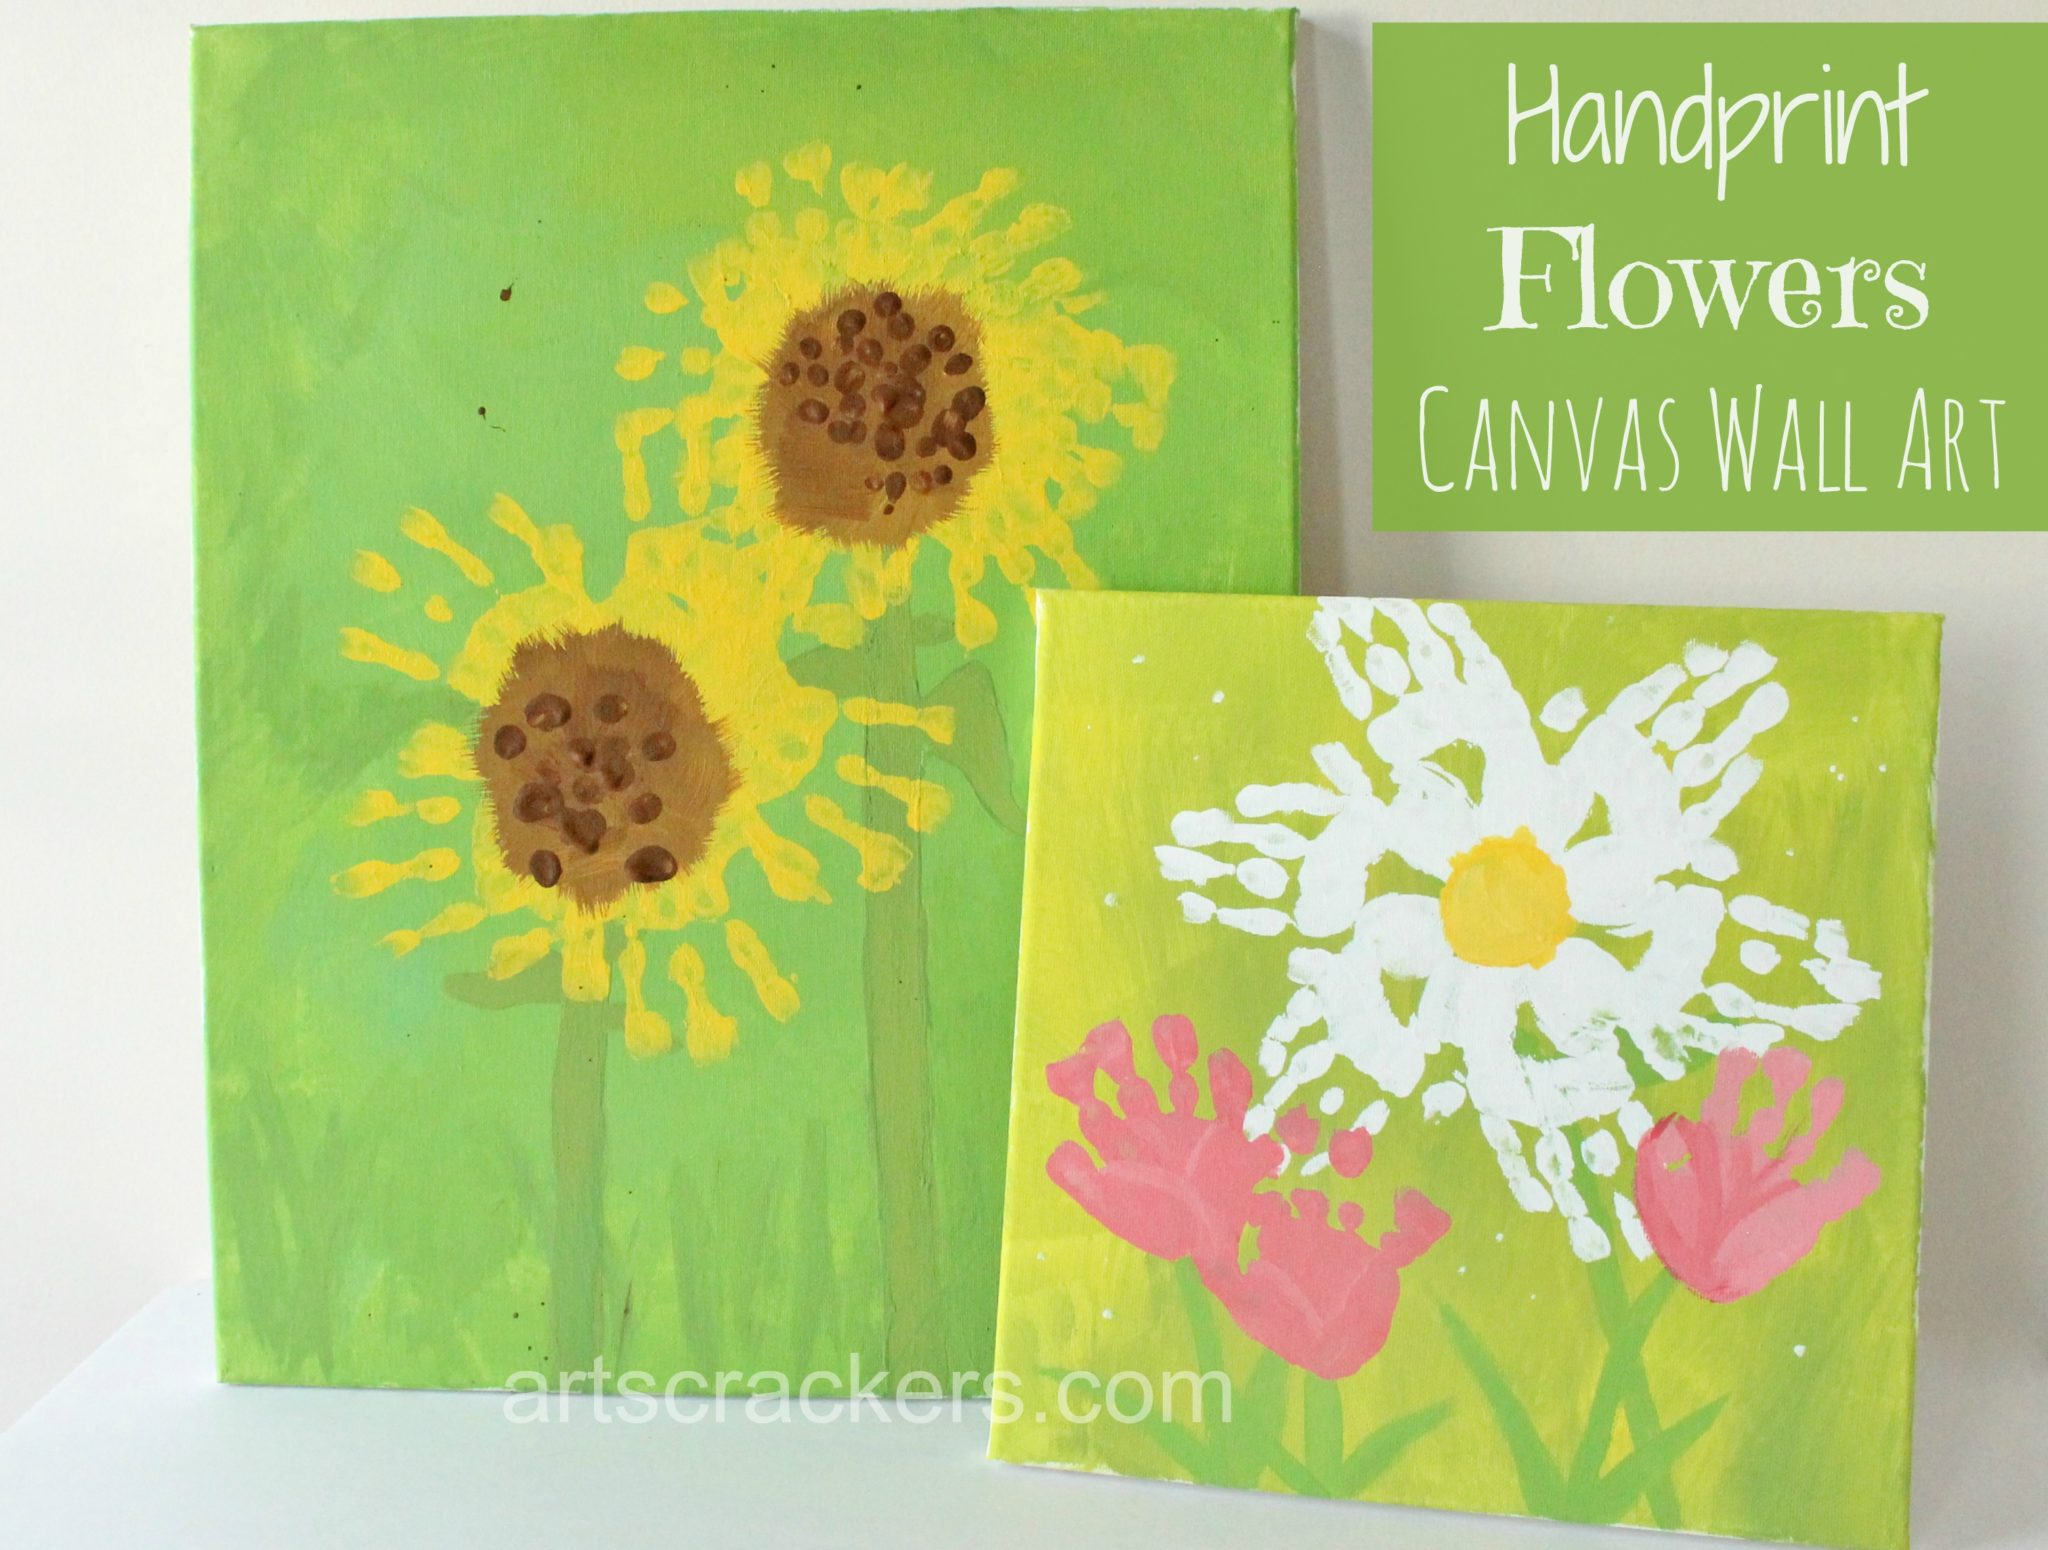 Handprint Flowers Canvas Wall Art Tutorial. Click the picture to view the instructions.